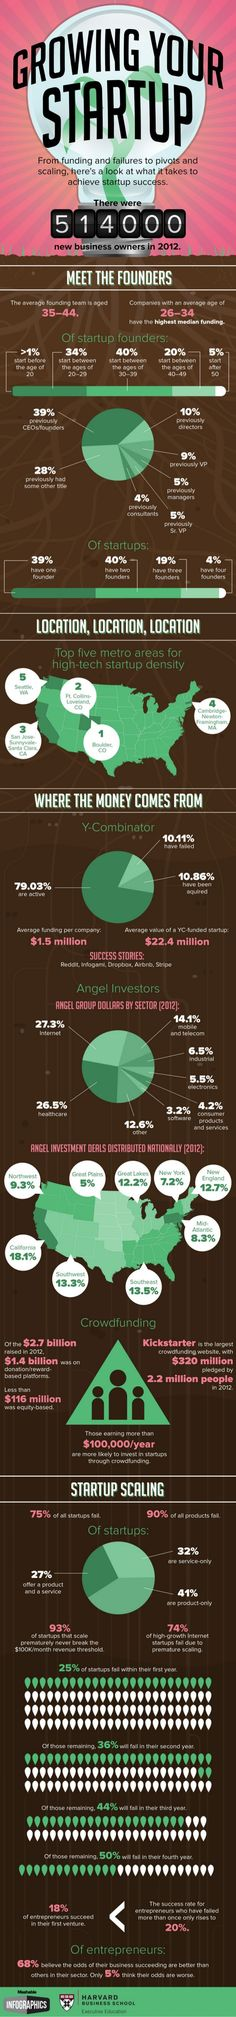 Startup Success By the Numbers by Mashable via slideshare